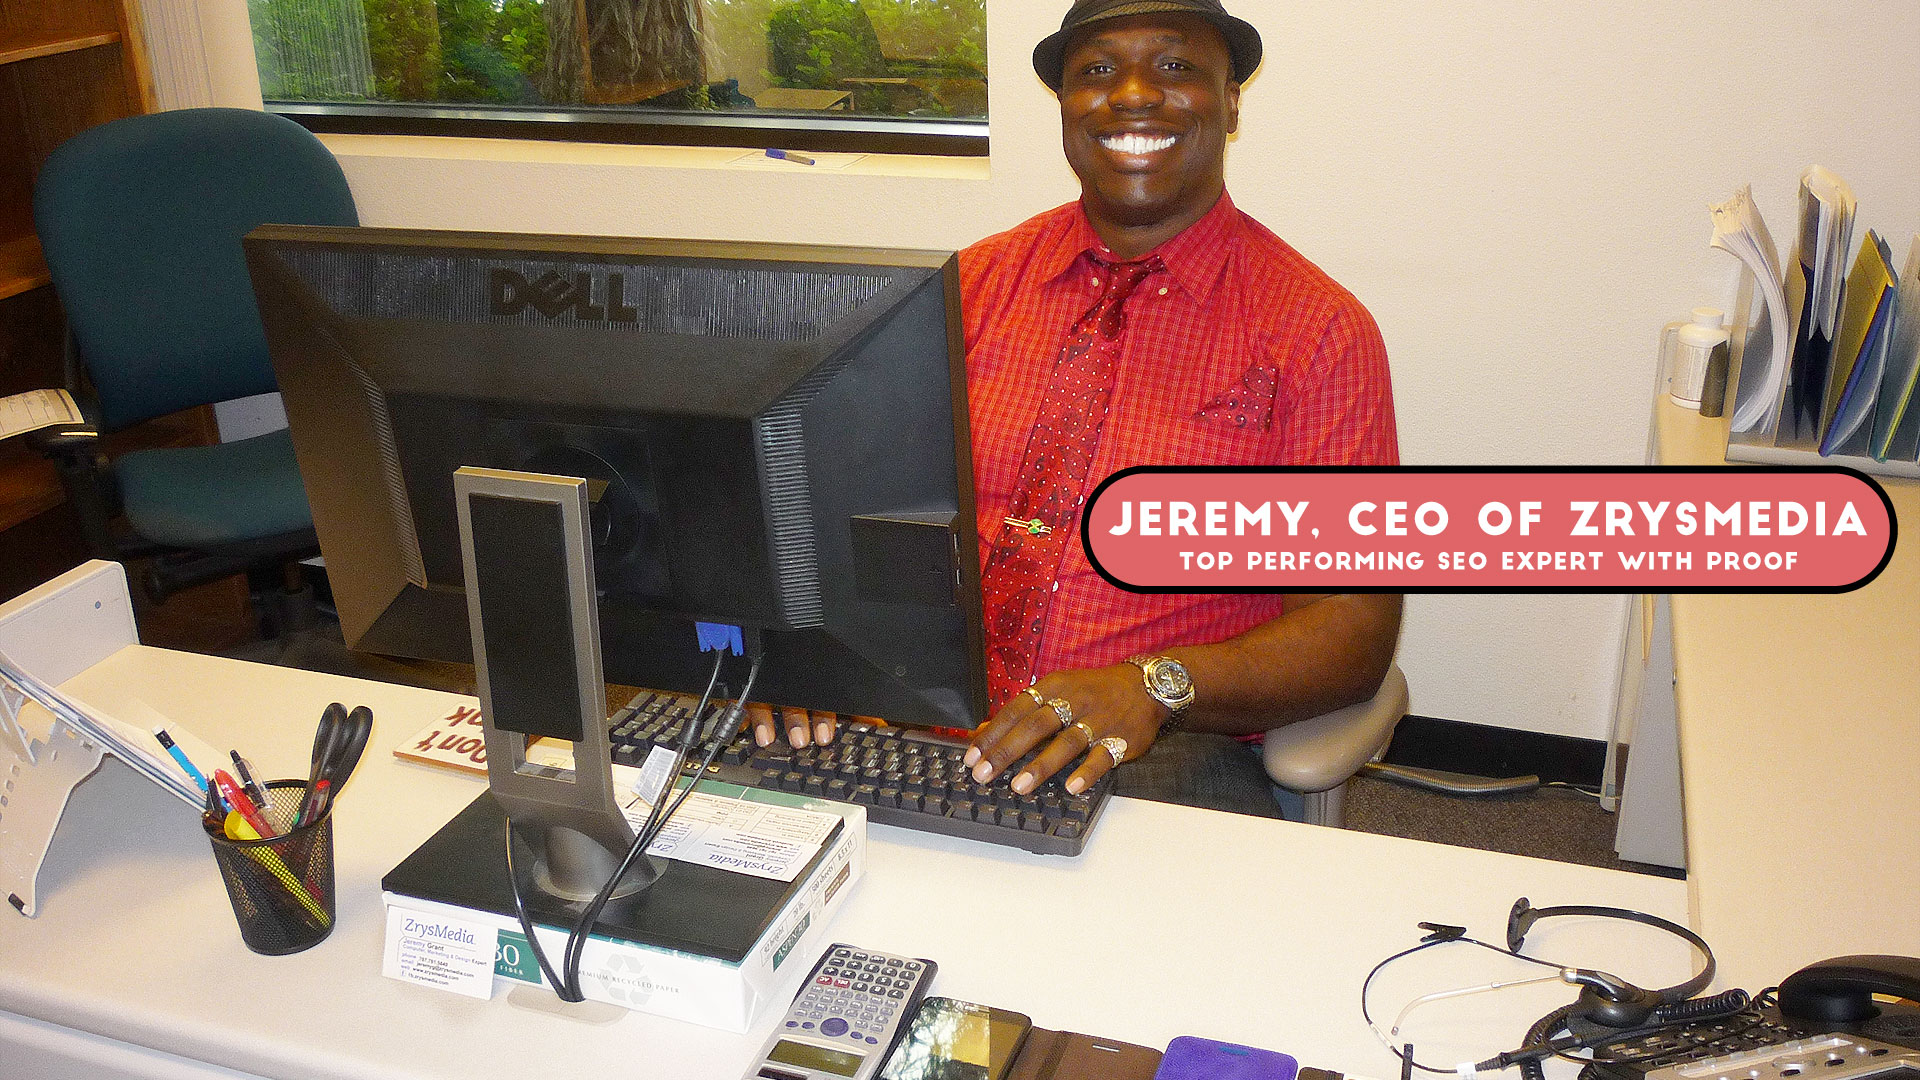 Director of SEO & CEO of ZrysMedia - Jeremy